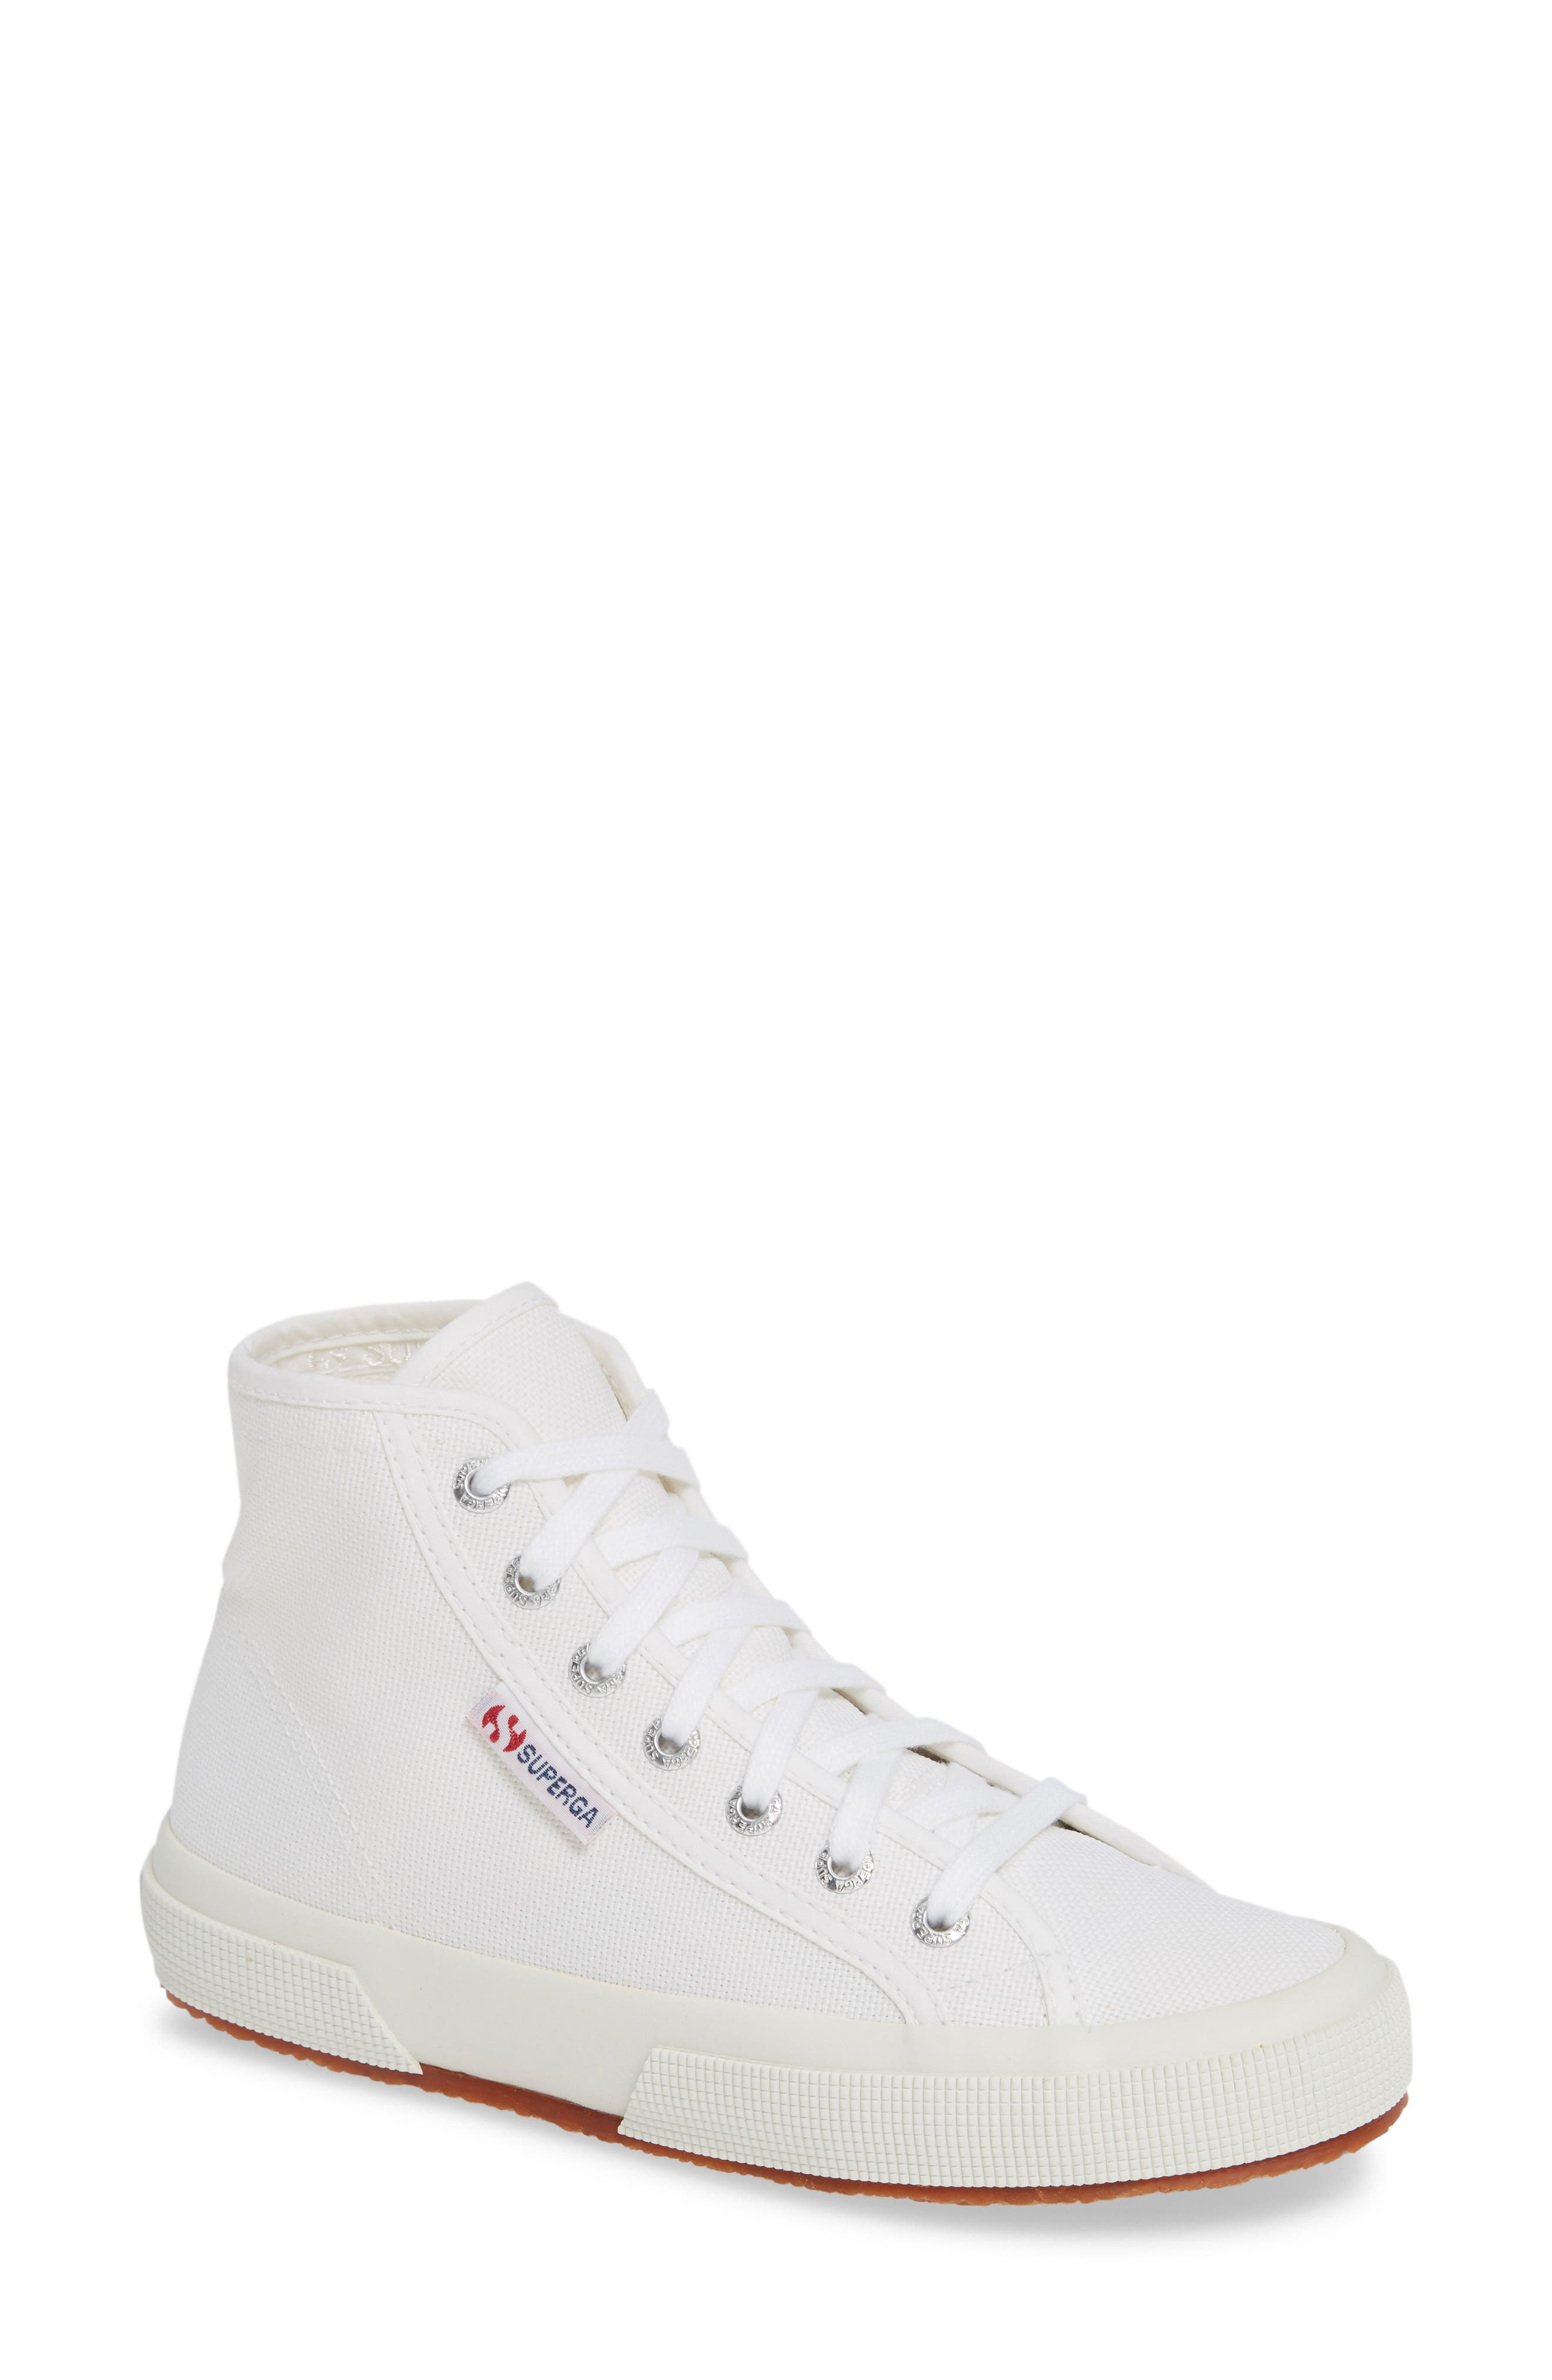 2795 High Top Sneaker,                         Main,                         color, WHITE